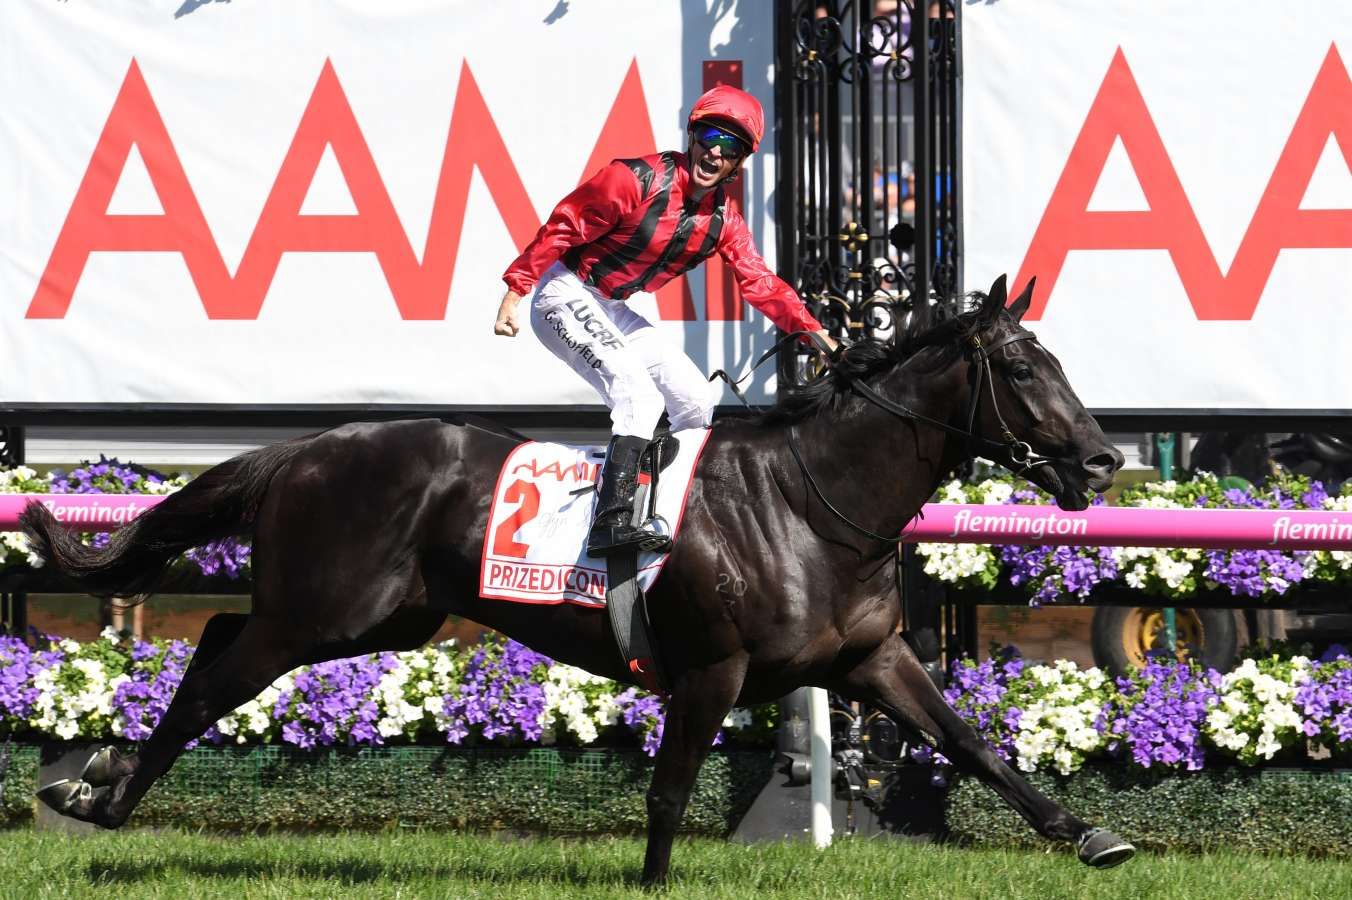 Prized Icon – Derby Winning Dark Bay Colt By More Than Ready